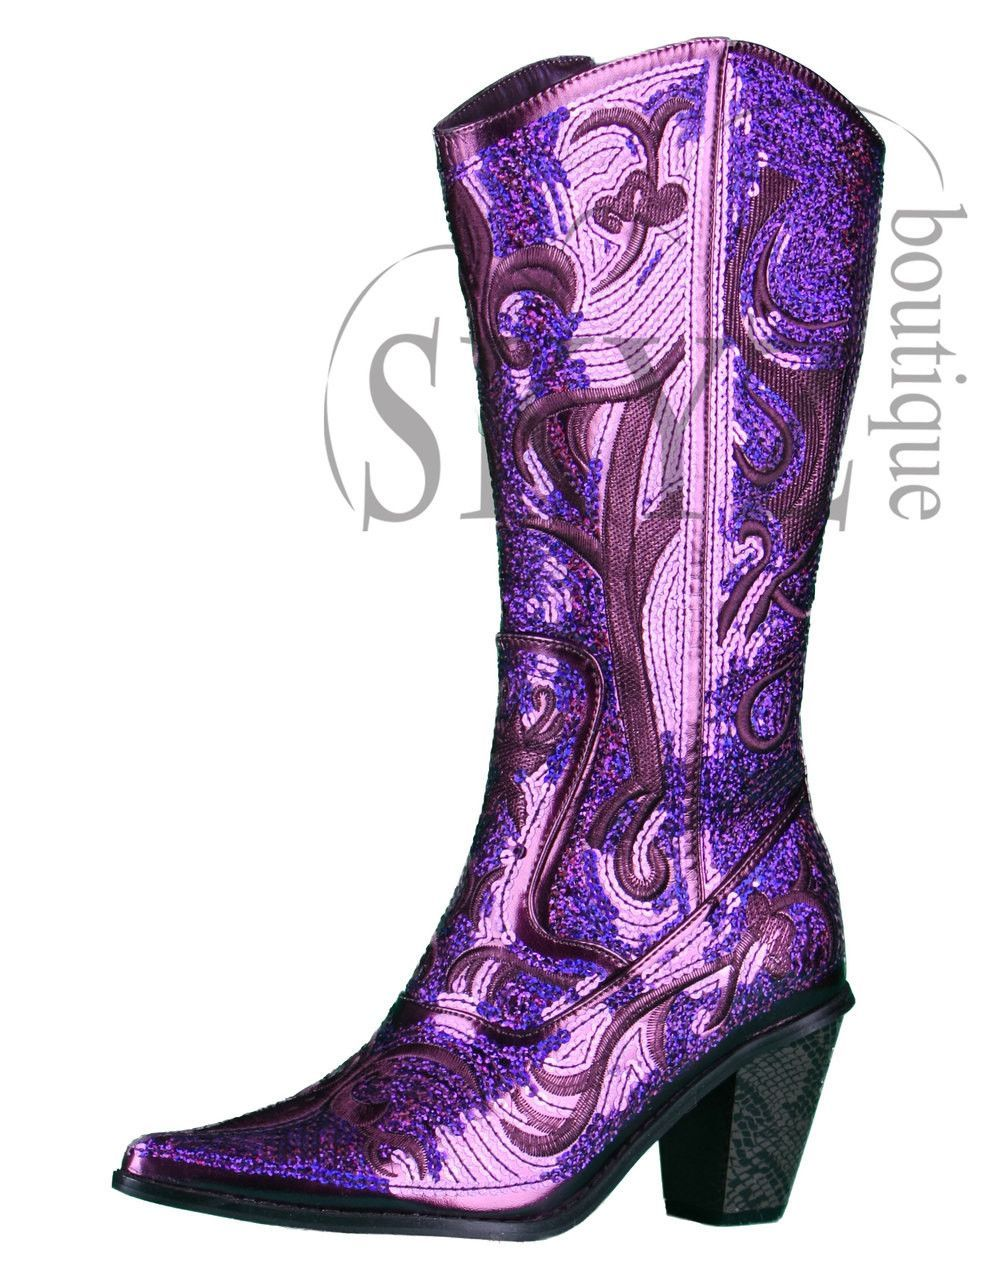 8131ba8fa9e We are dressing up the country cowgirl look with a sassy layer of sequin on  an eye catching purple color. It s a bold move